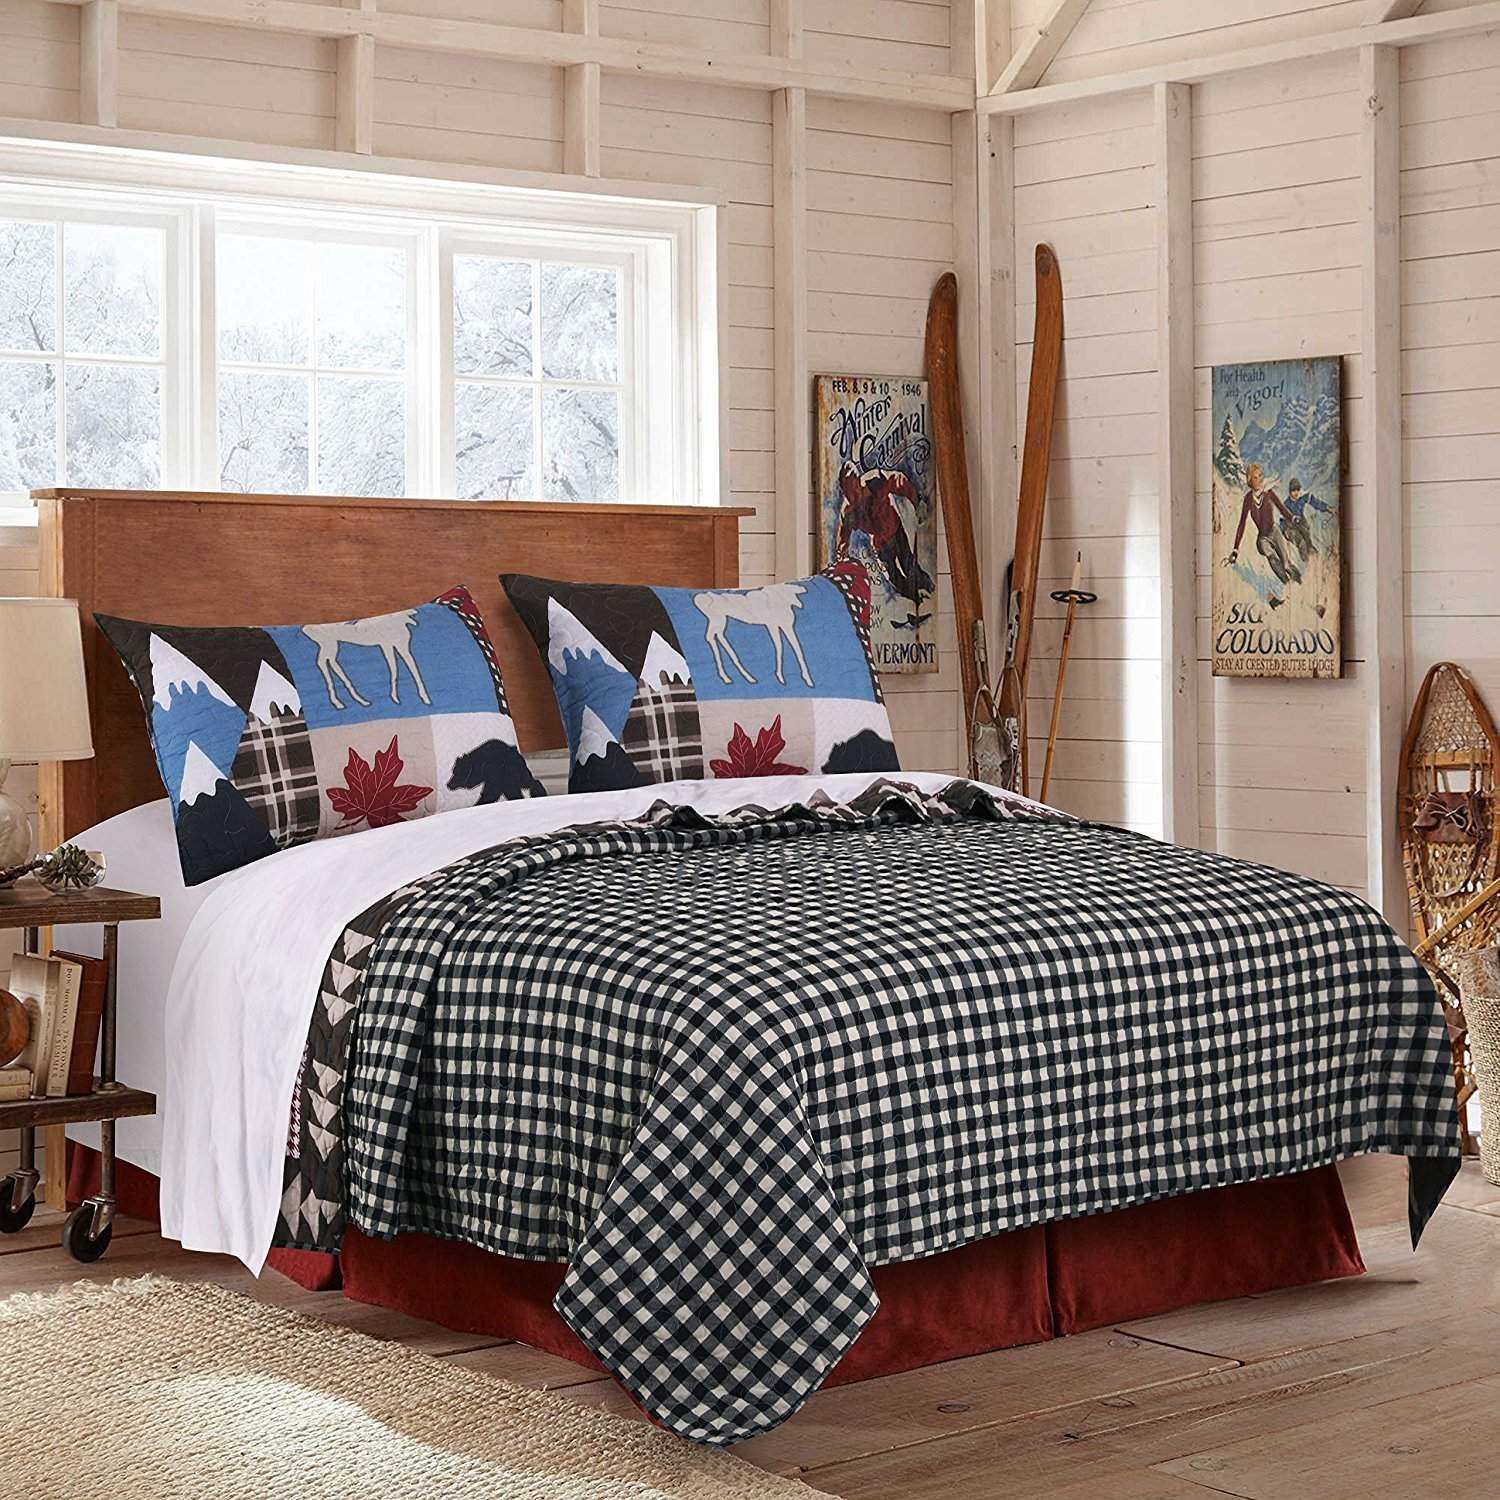 3pc Blue White Red Black Hunting Themed Quilt King Set, Black Bear Bedding Moose Plaid Log Cabin Pattern Lodge Leaf